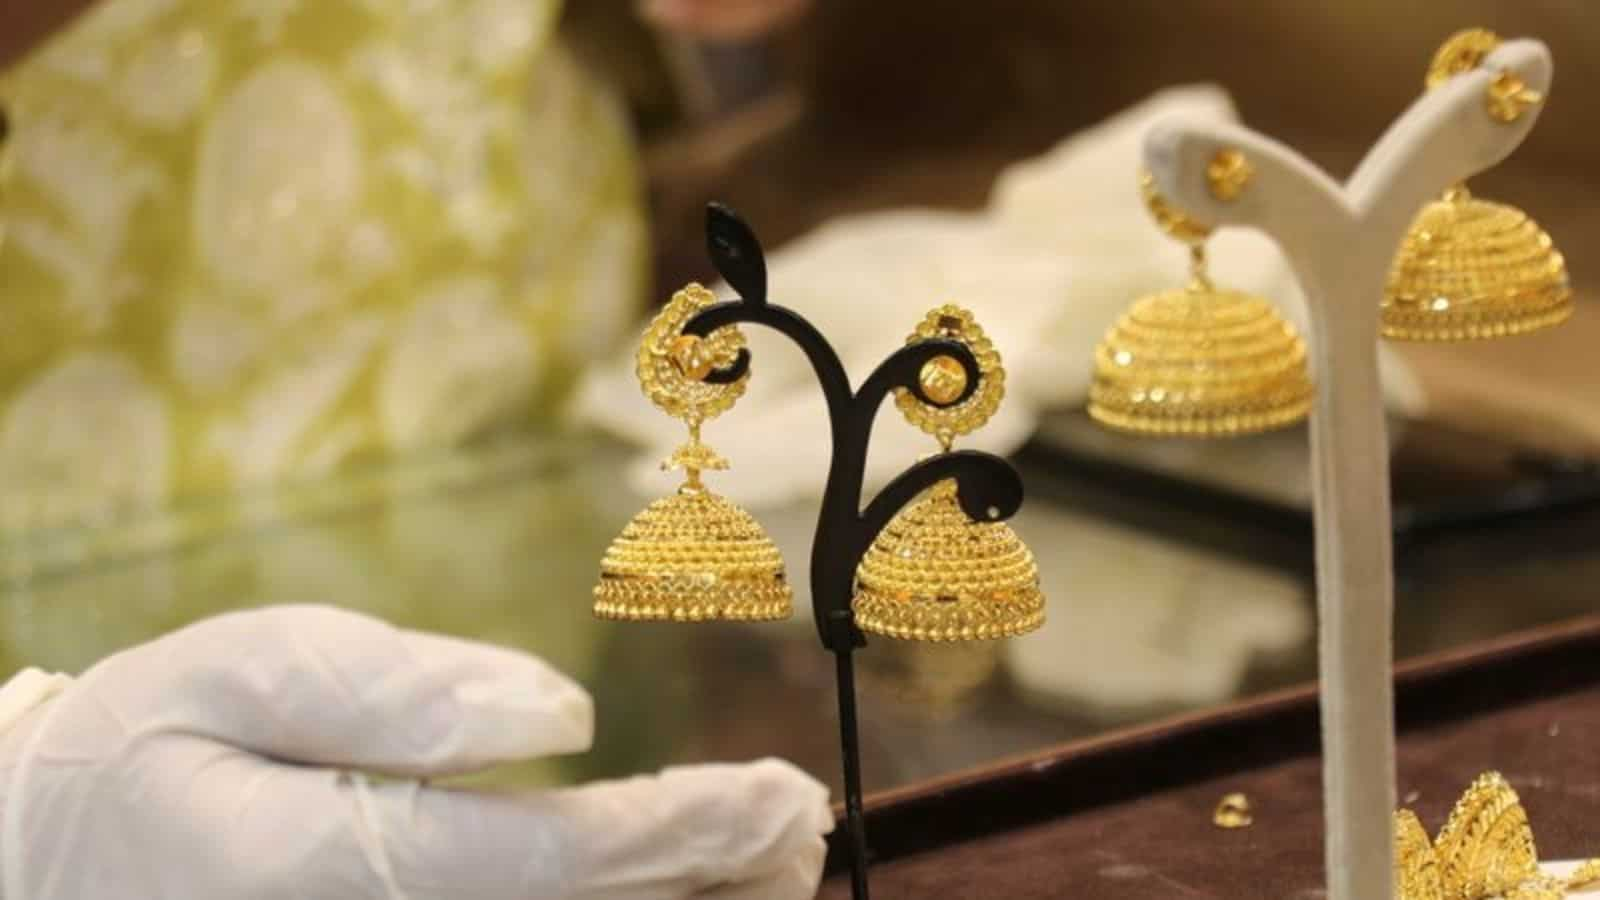 Government clarifies on KYC norms for jewellery purchase